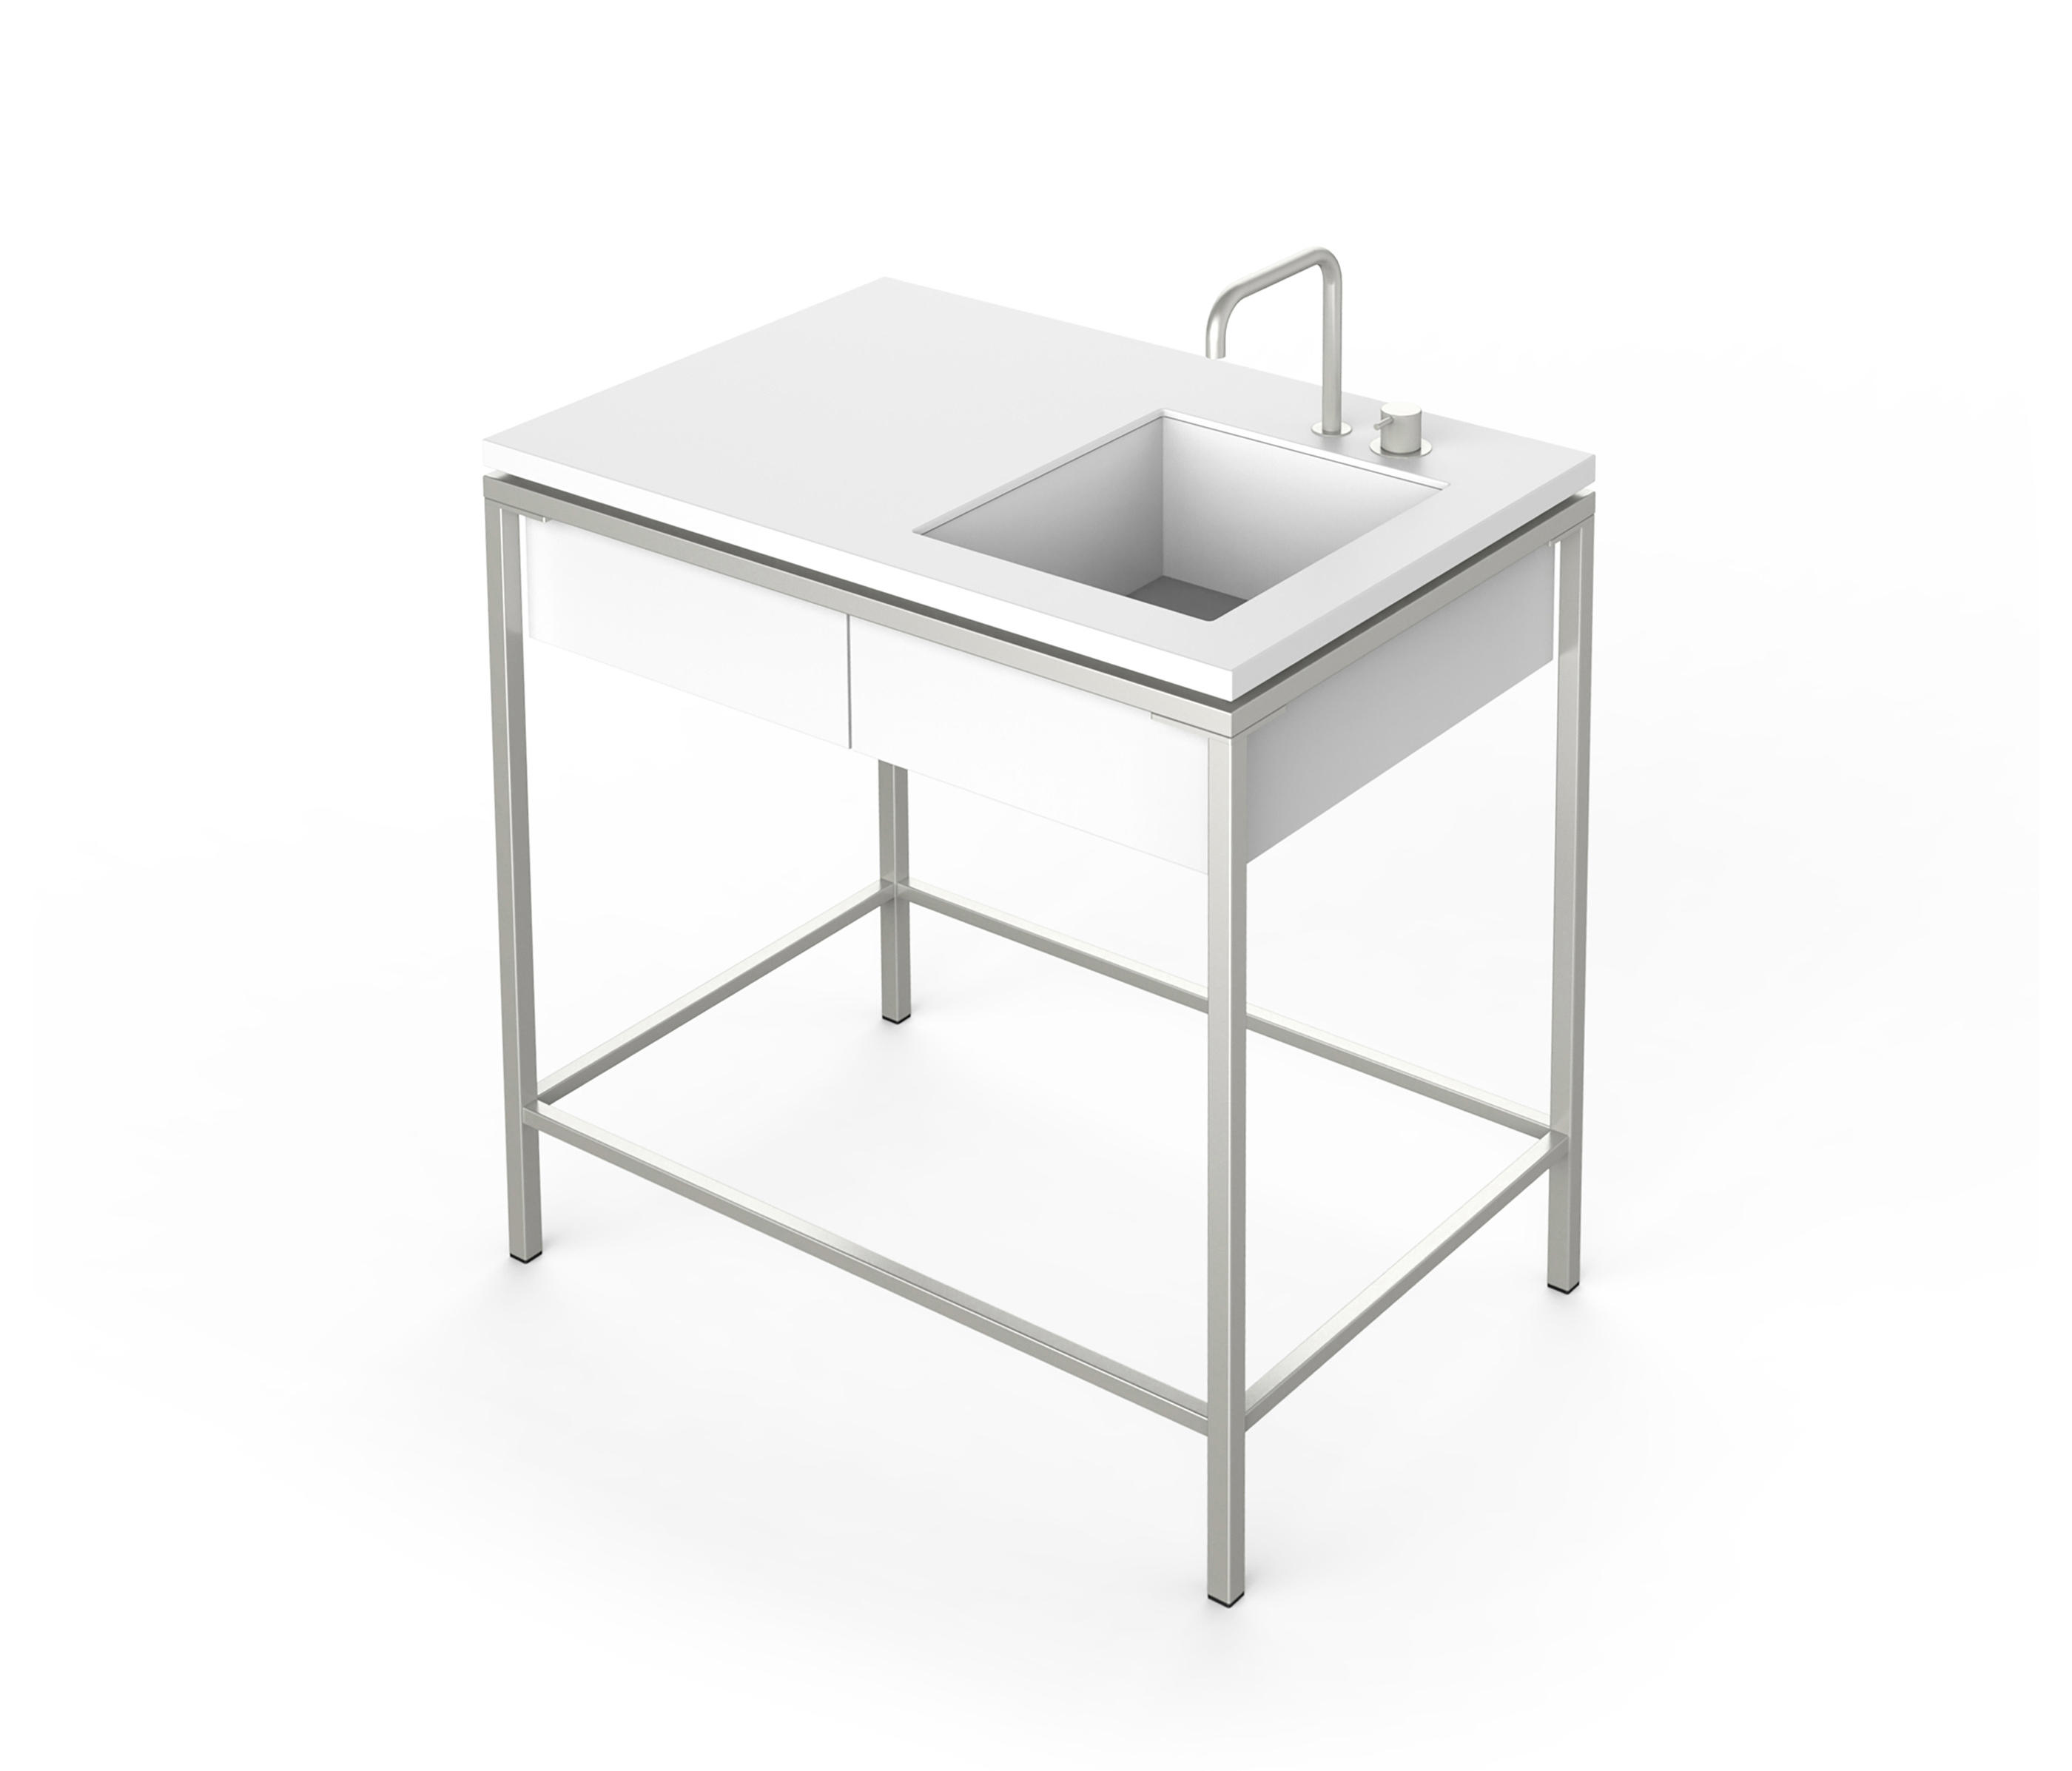 Outdoor kitchen sink table outdoor kitchen themes used for Small outdoor kitchen sink